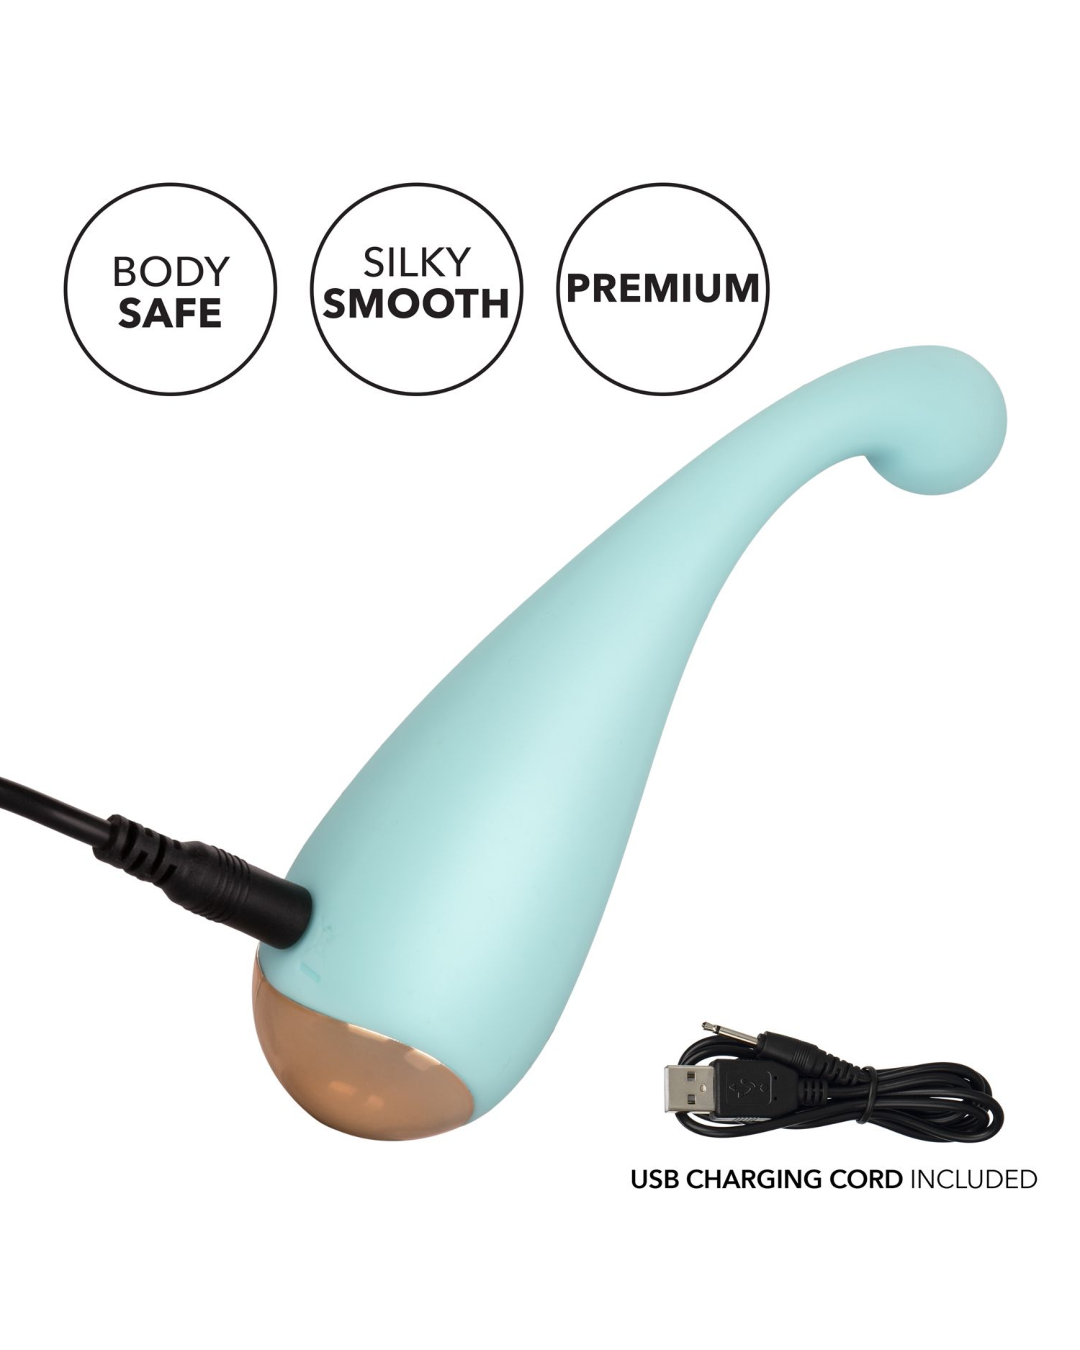 Slay Thrill Me Rechargeable Waterproof External Palm Sized Vibrator by Calexotics with charging cable